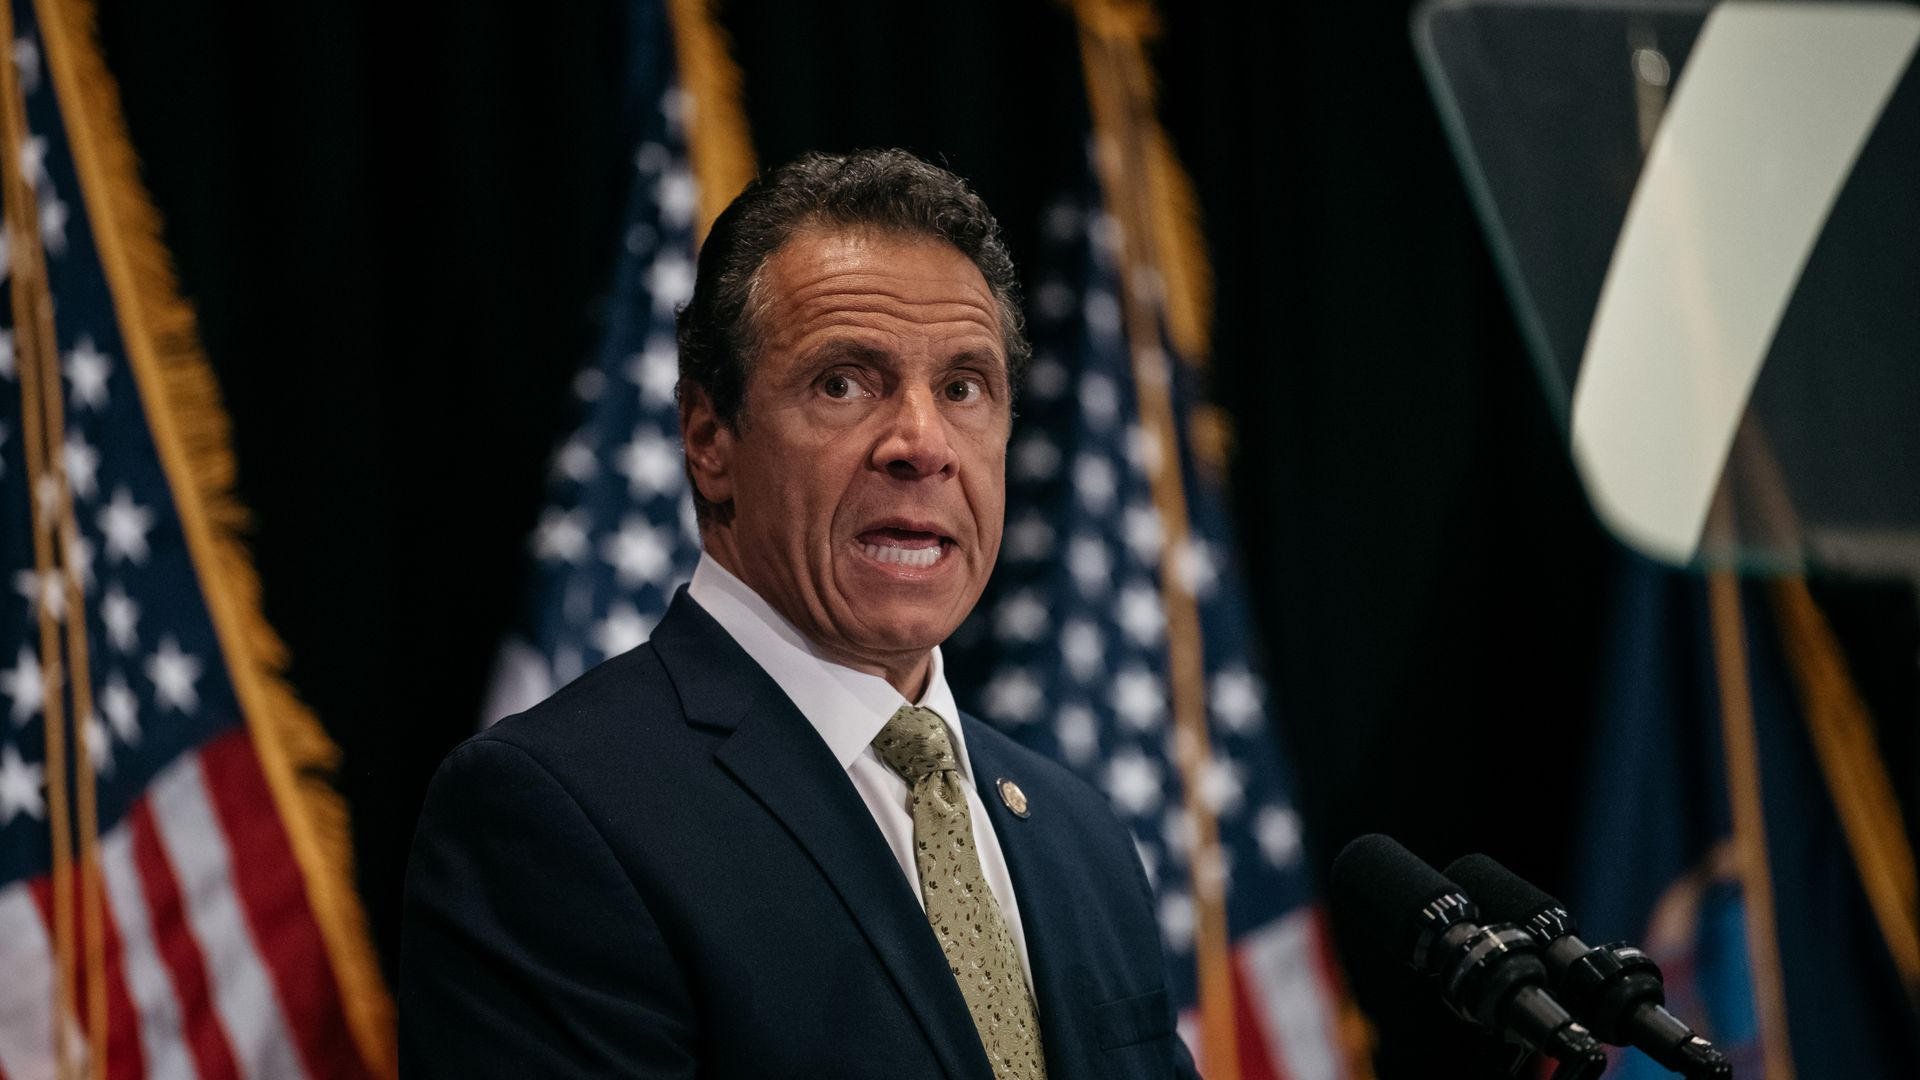 Andrew Cuomo speaks at an event